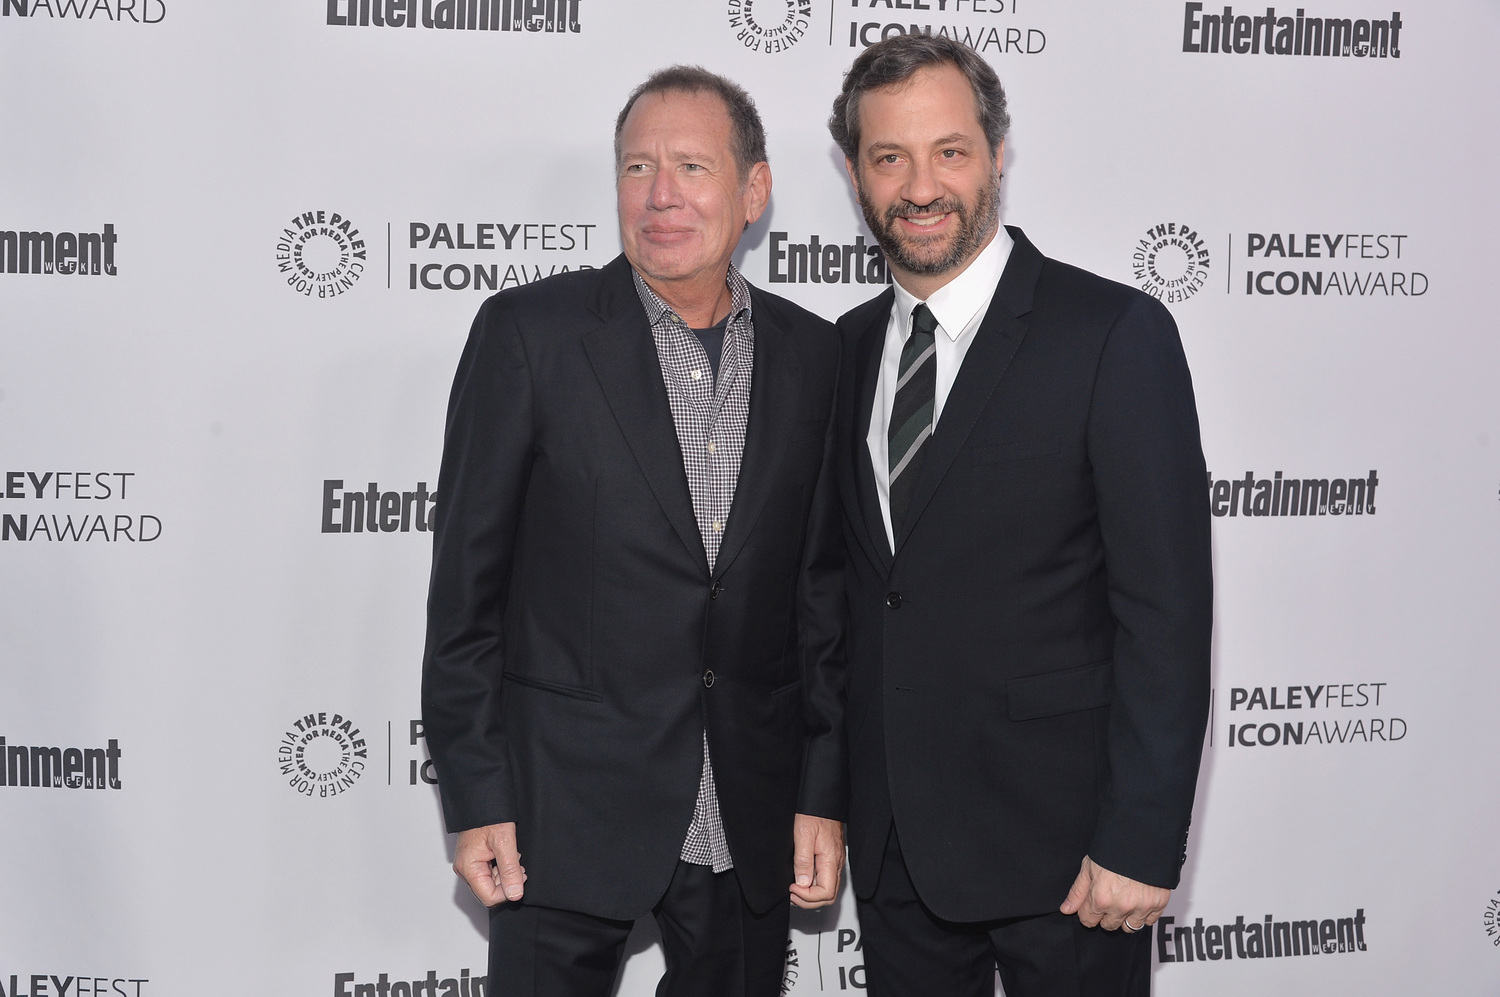 Gary Shandling and Judd Apatow in March 2014.